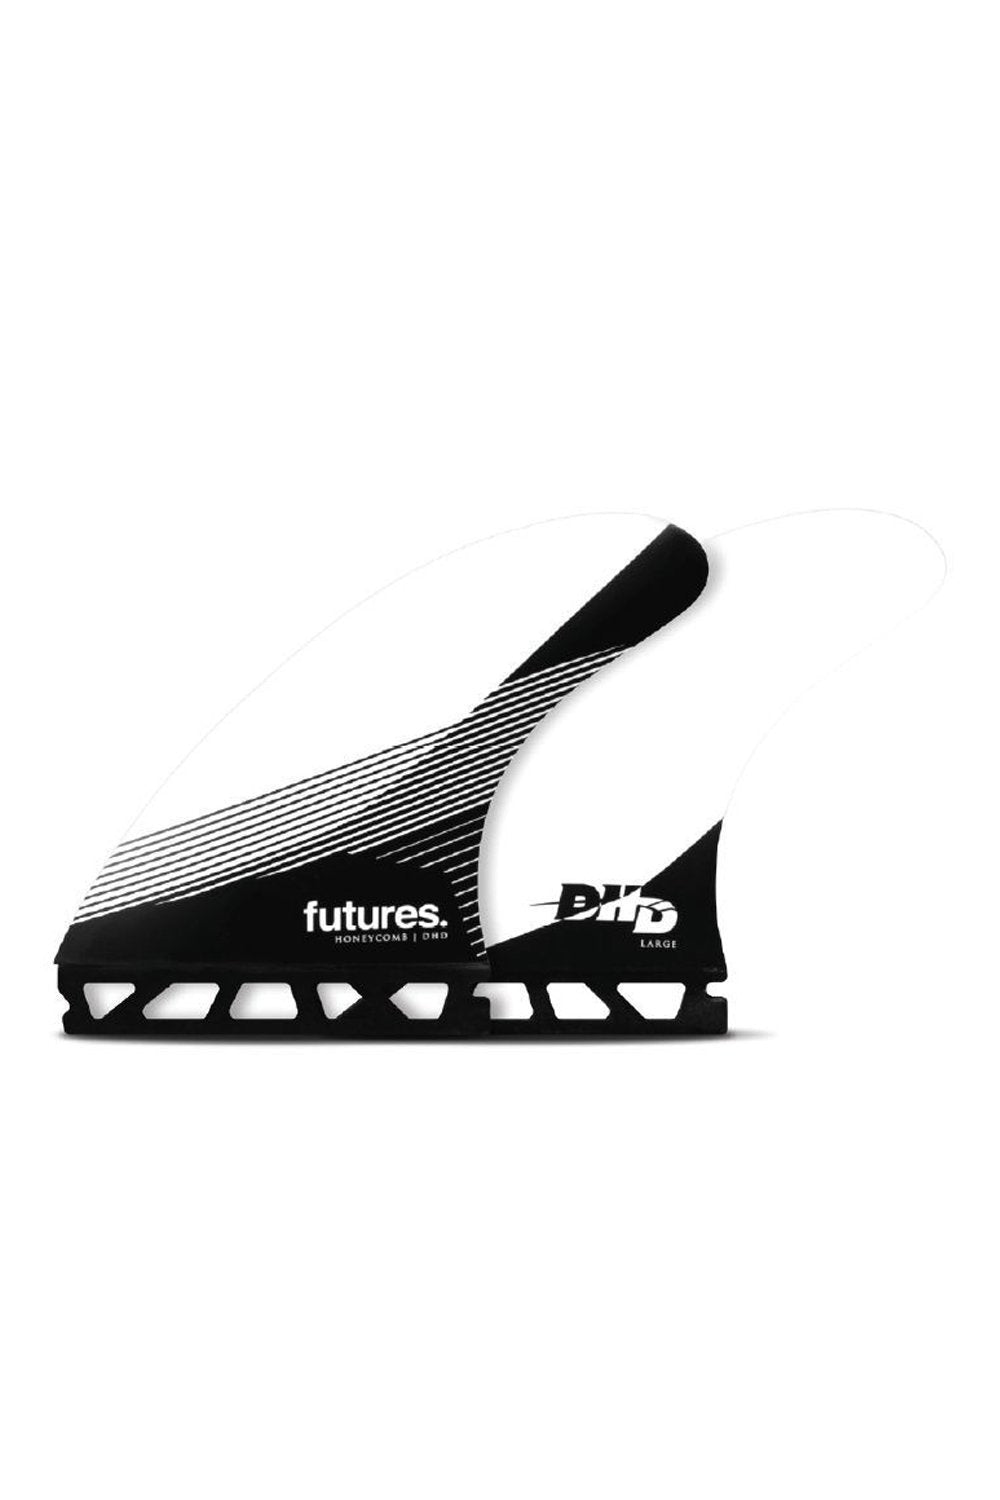 Futures DHD-HC-THRUSTER-SET - Black / White - Large